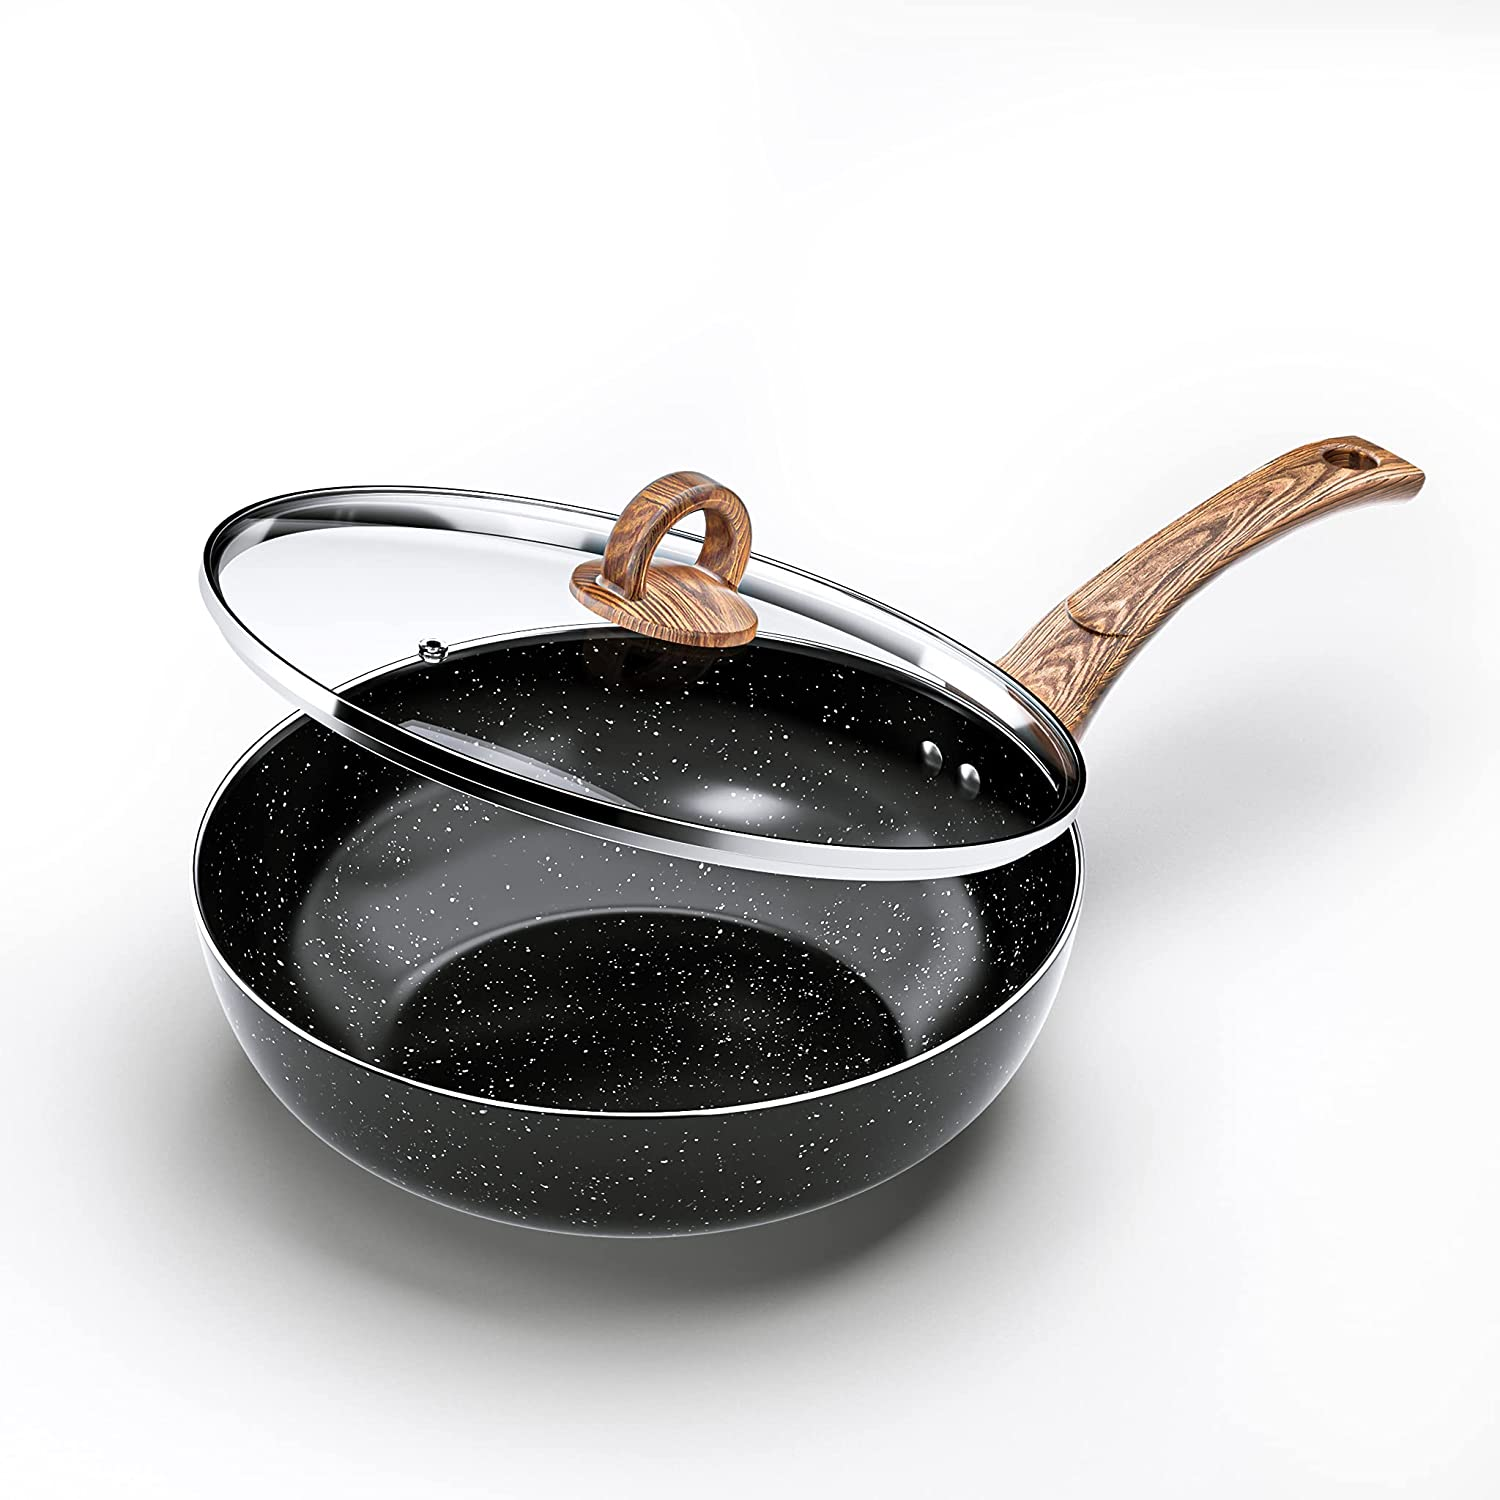 Nonstick Frying Pan with Lids Lid price Skillets Purchase Deep